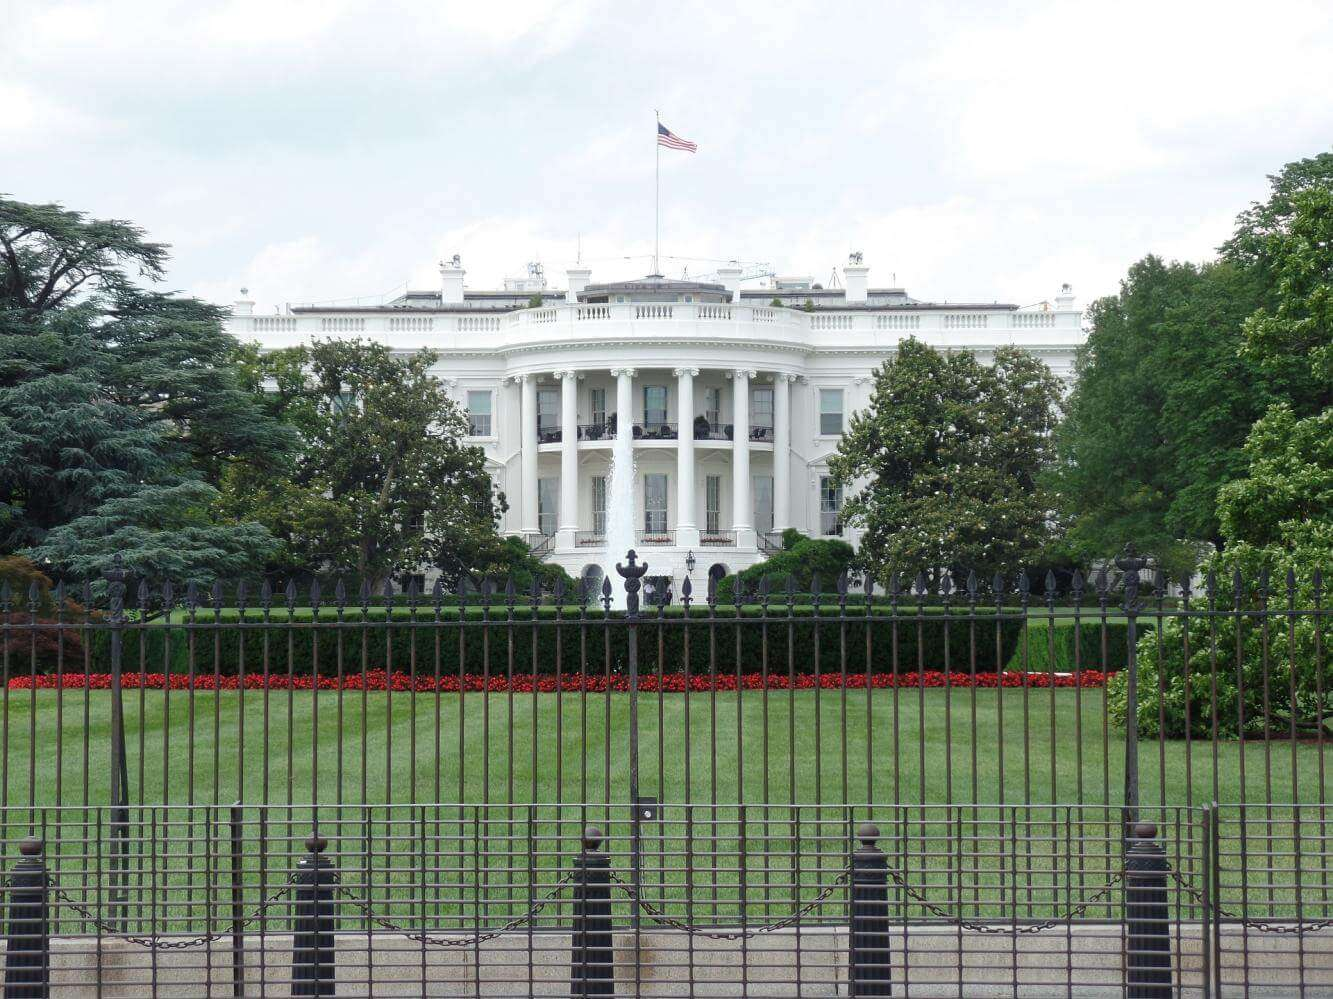 Restricted Area sign on the White House's fence